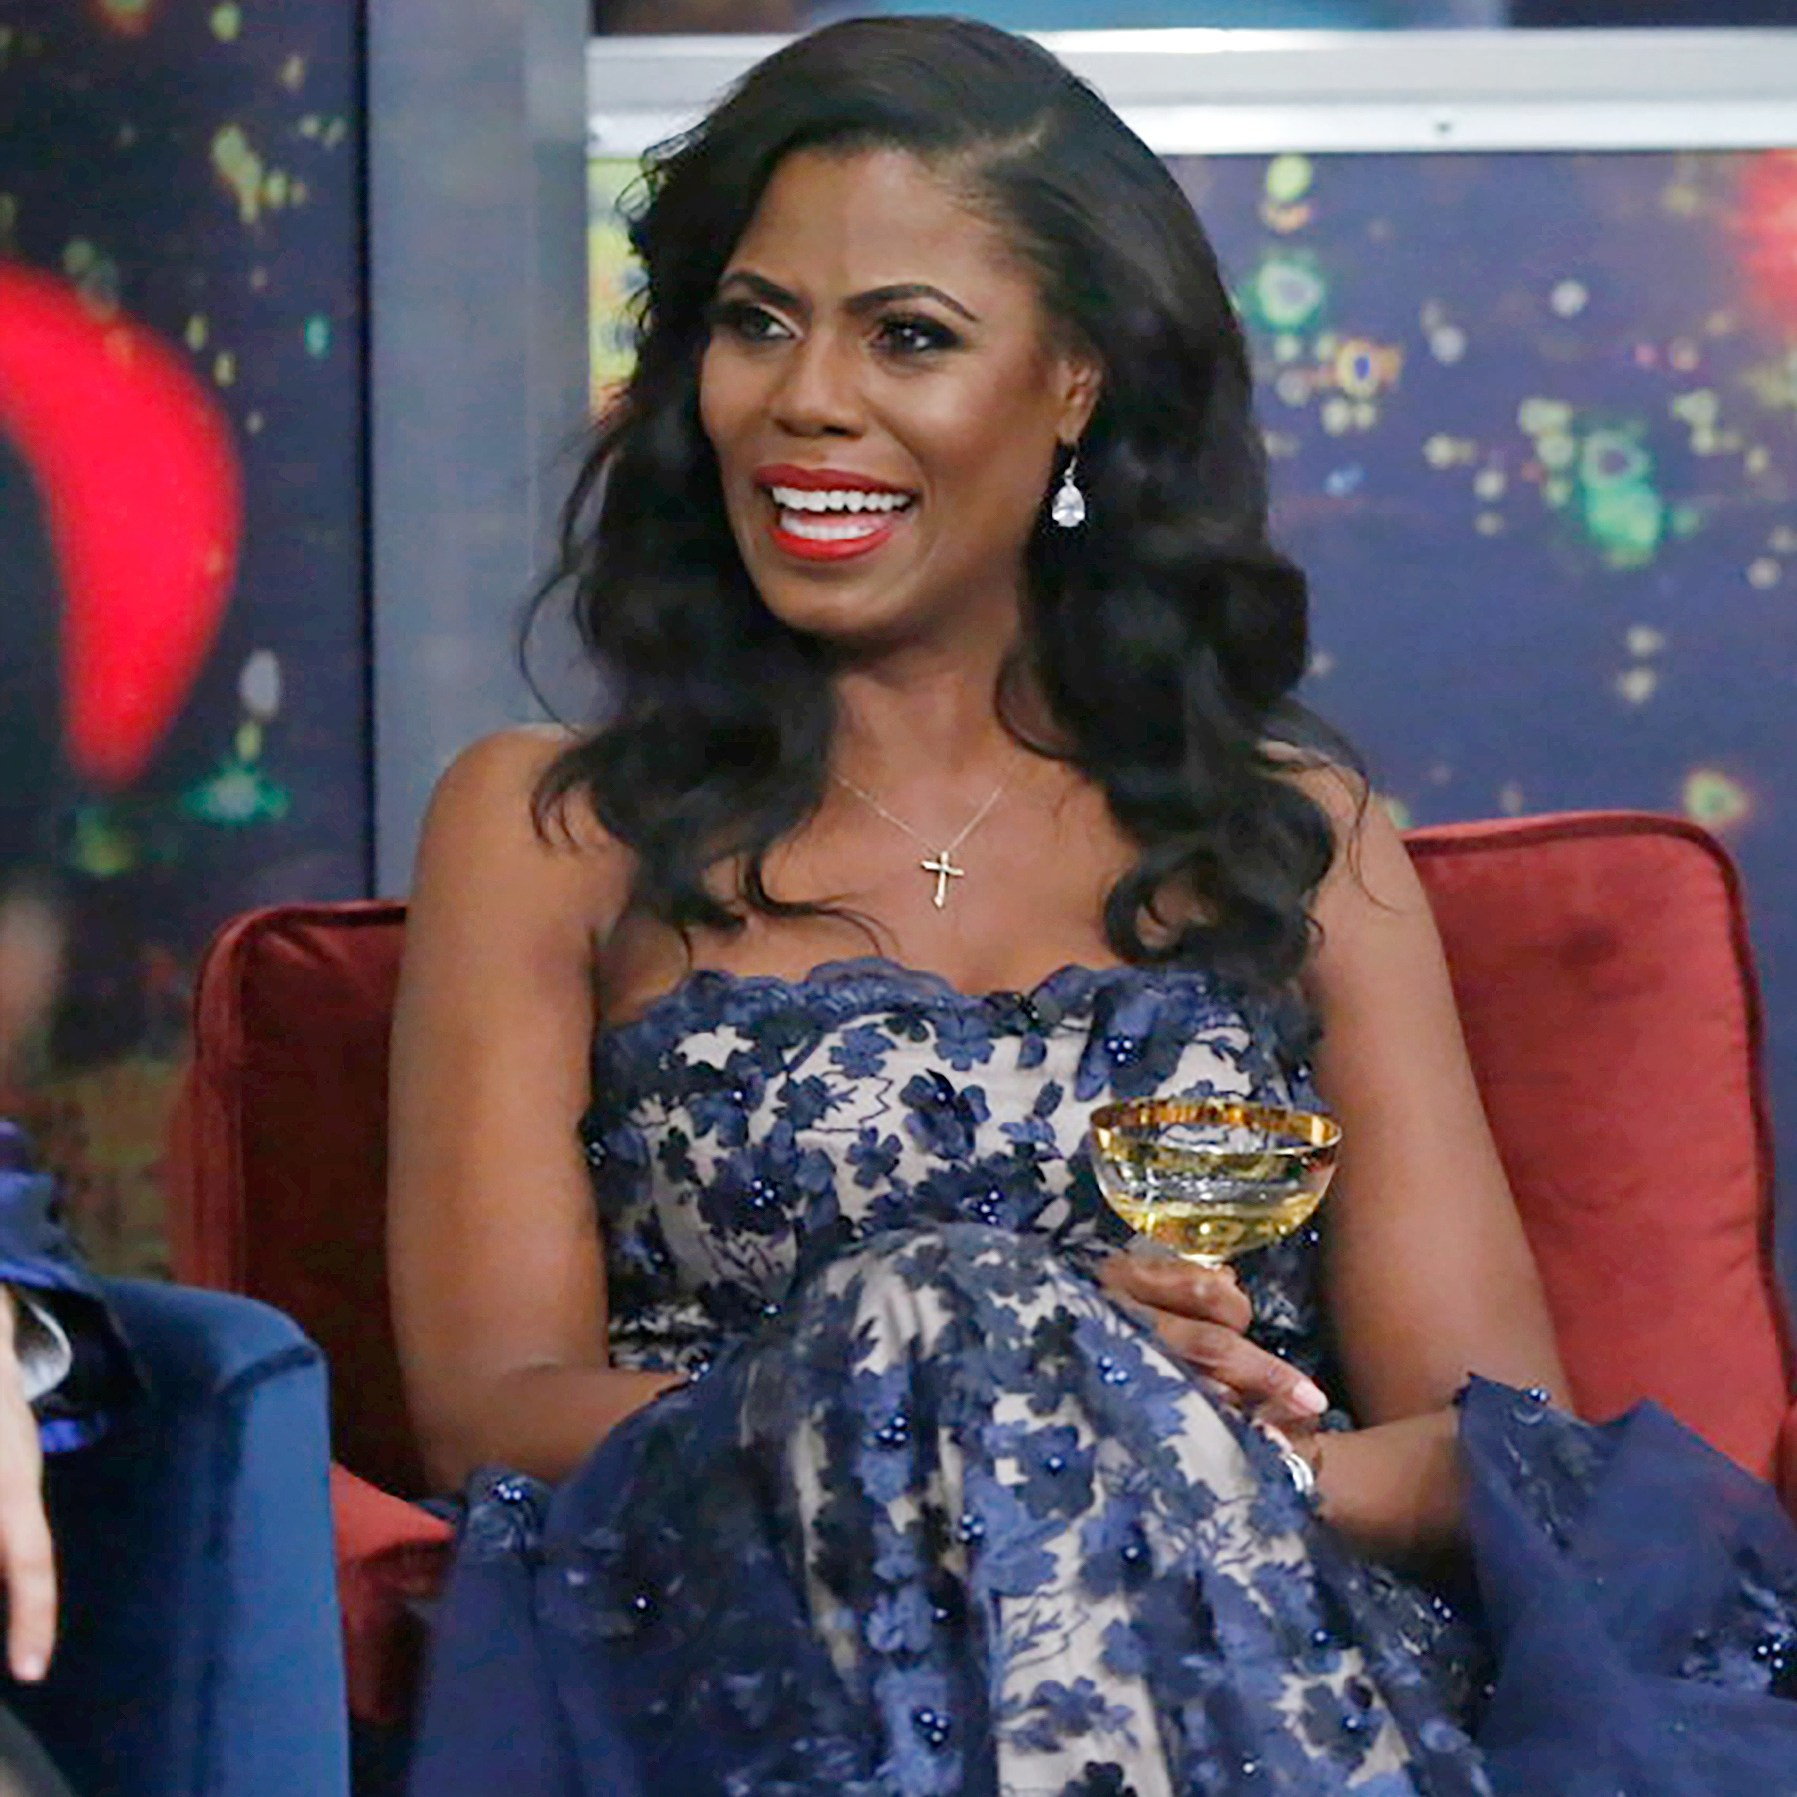 Omarosa, Celebrity Big Brother, White House, Sleeping Around